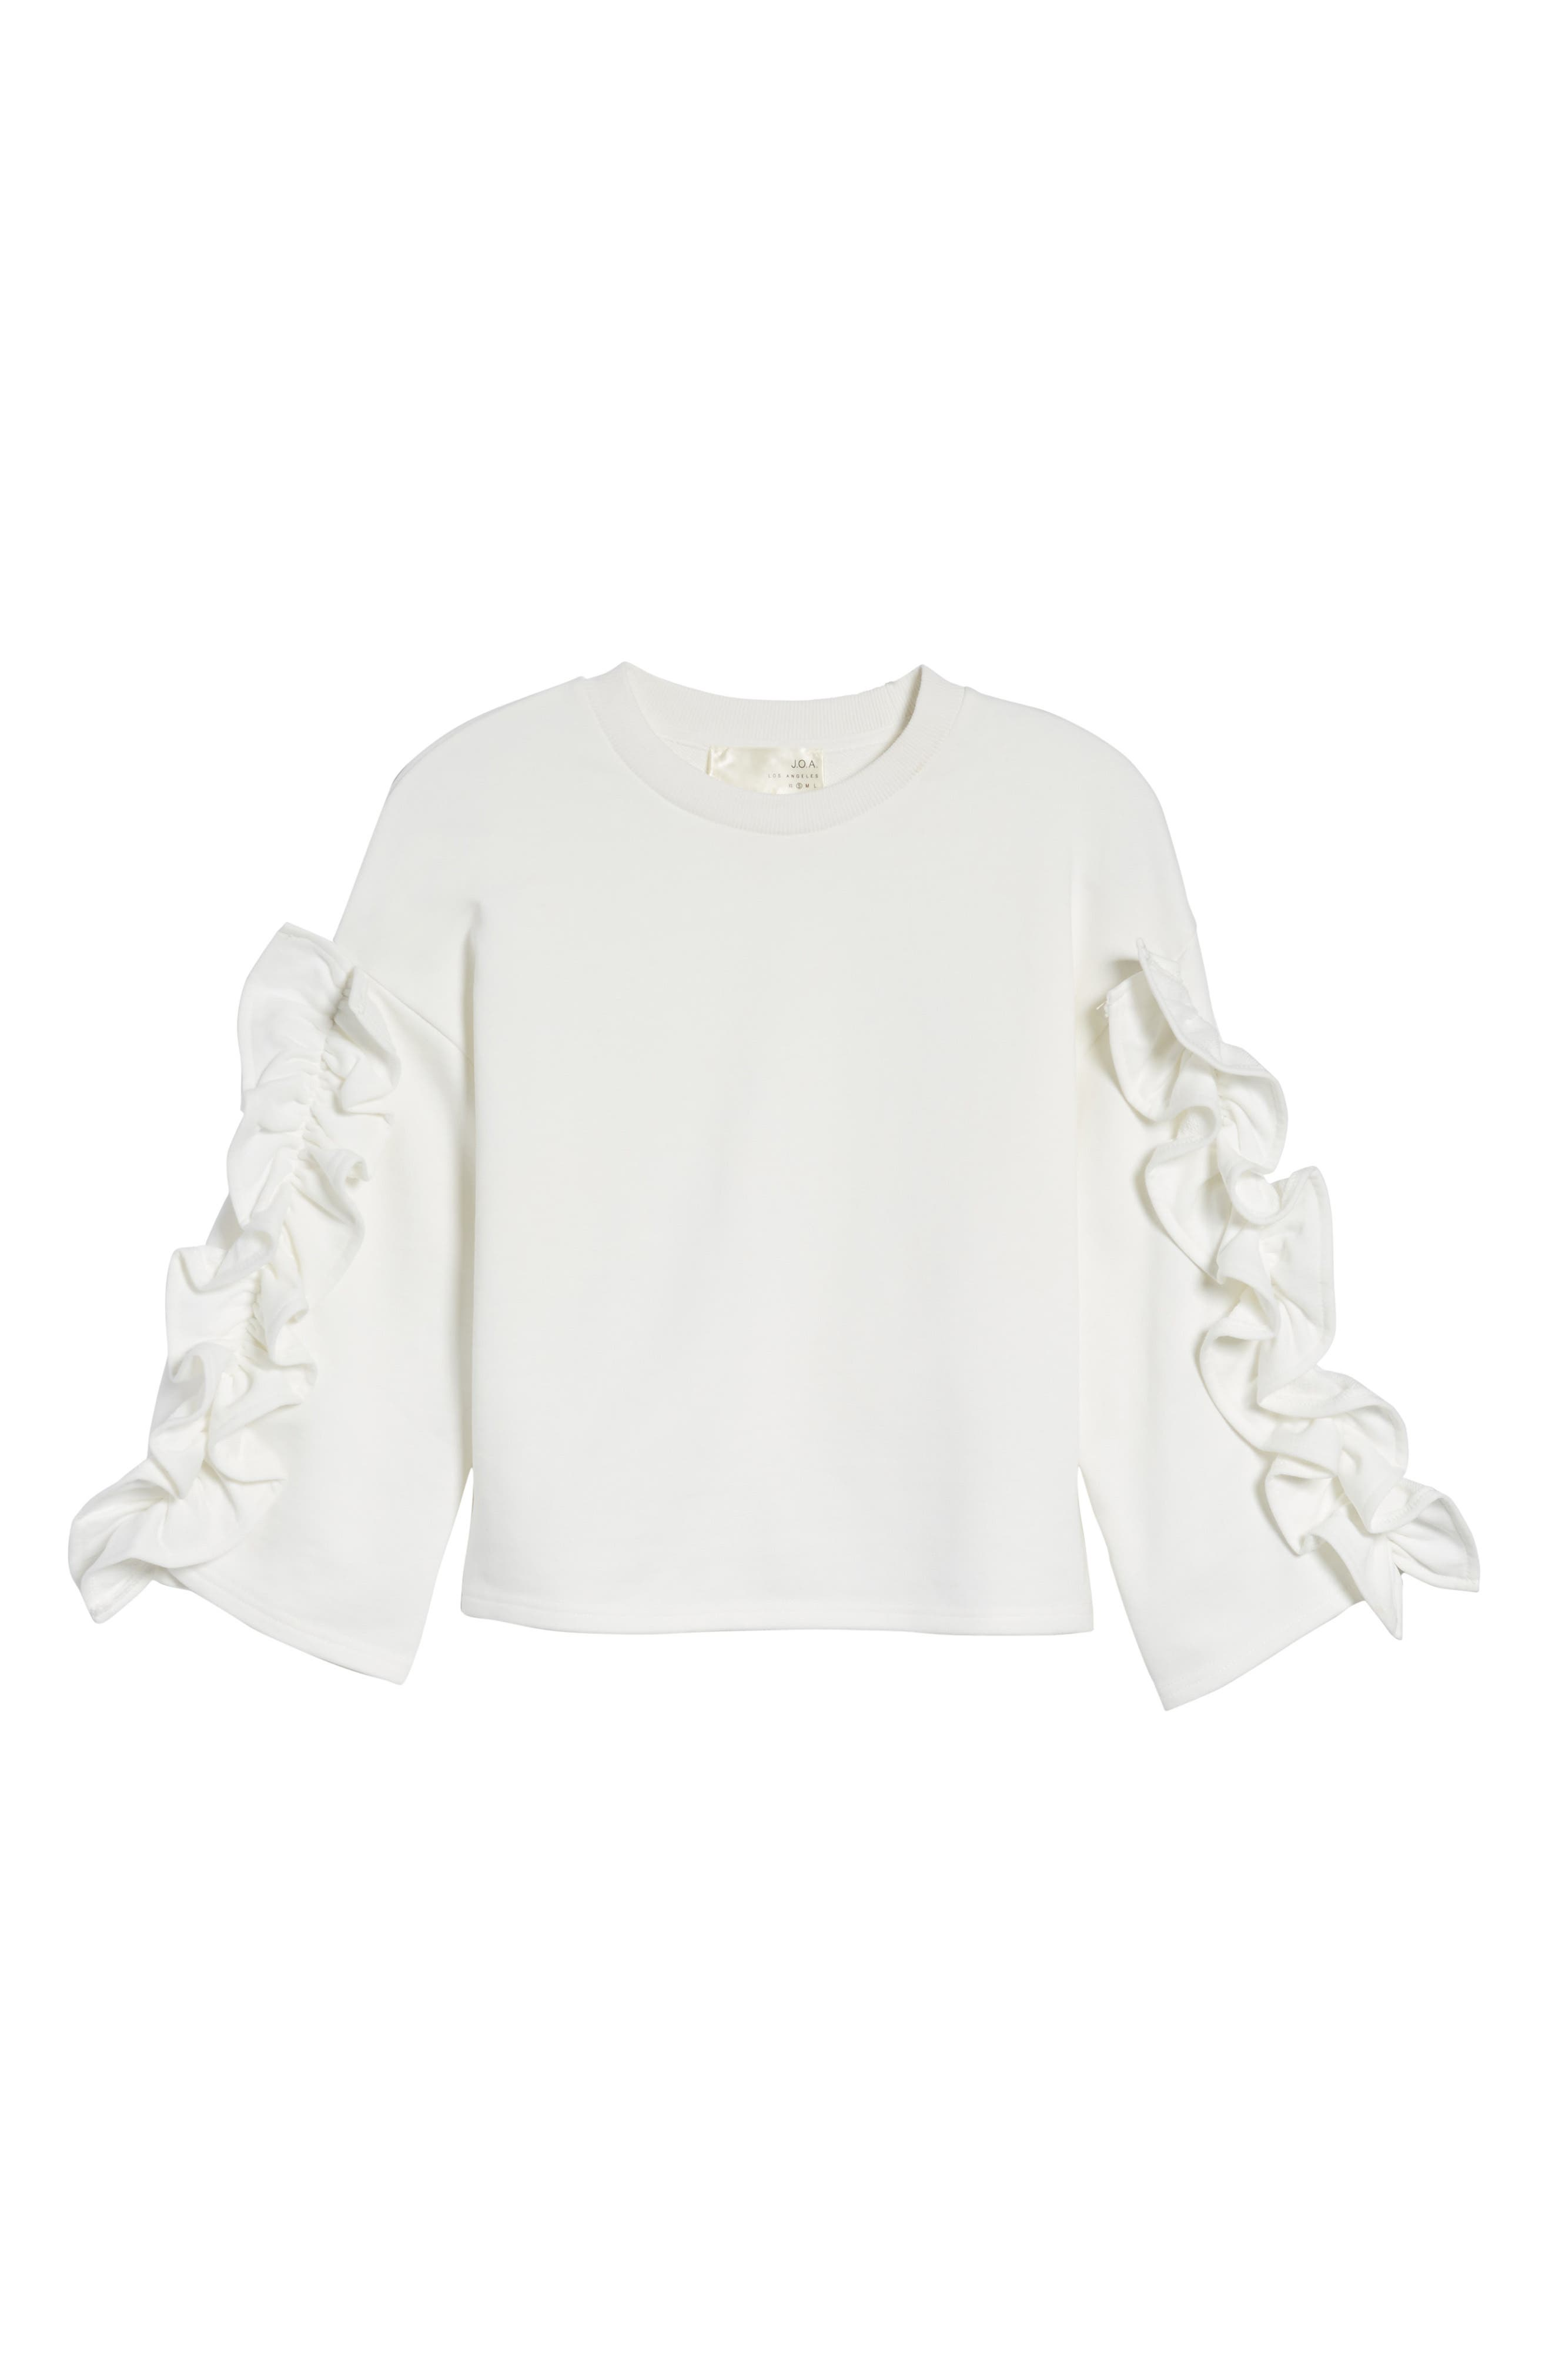 Ruffle Sleeve Top,                             Alternate thumbnail 6, color,                             White